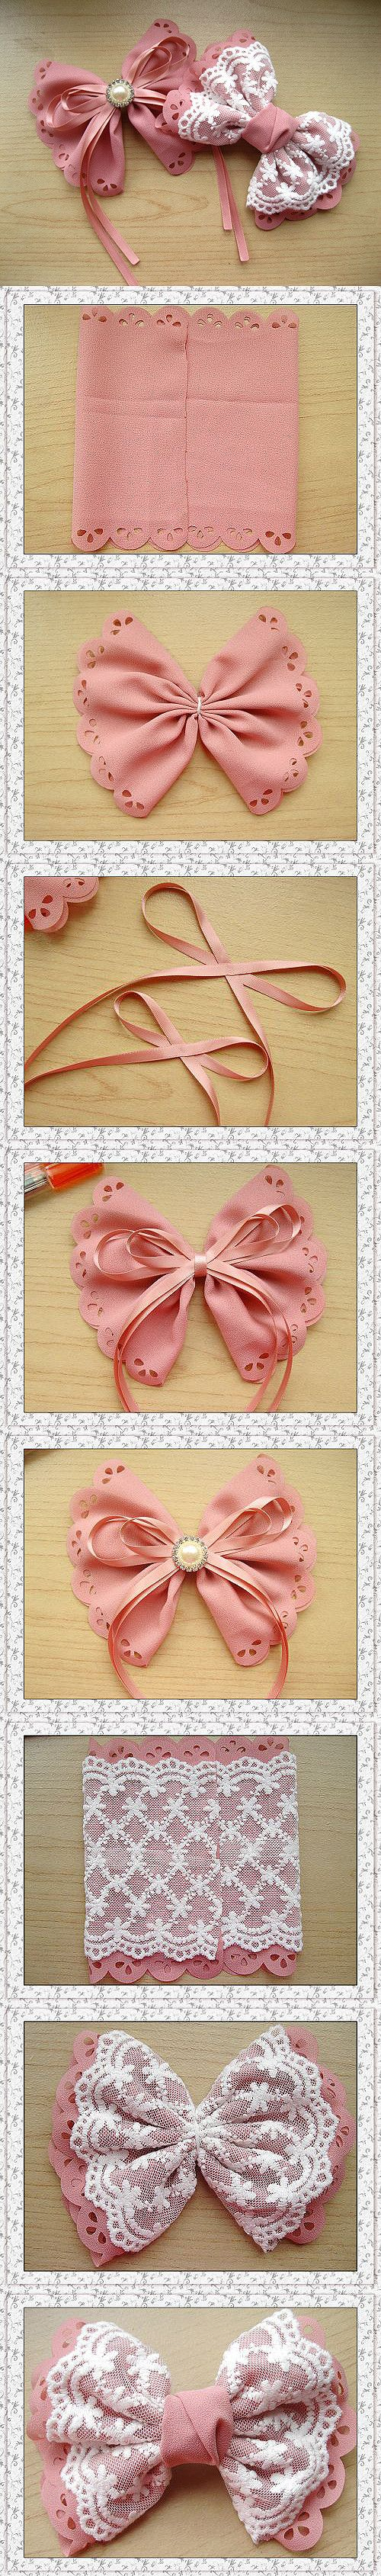 DIY Cute Bows!